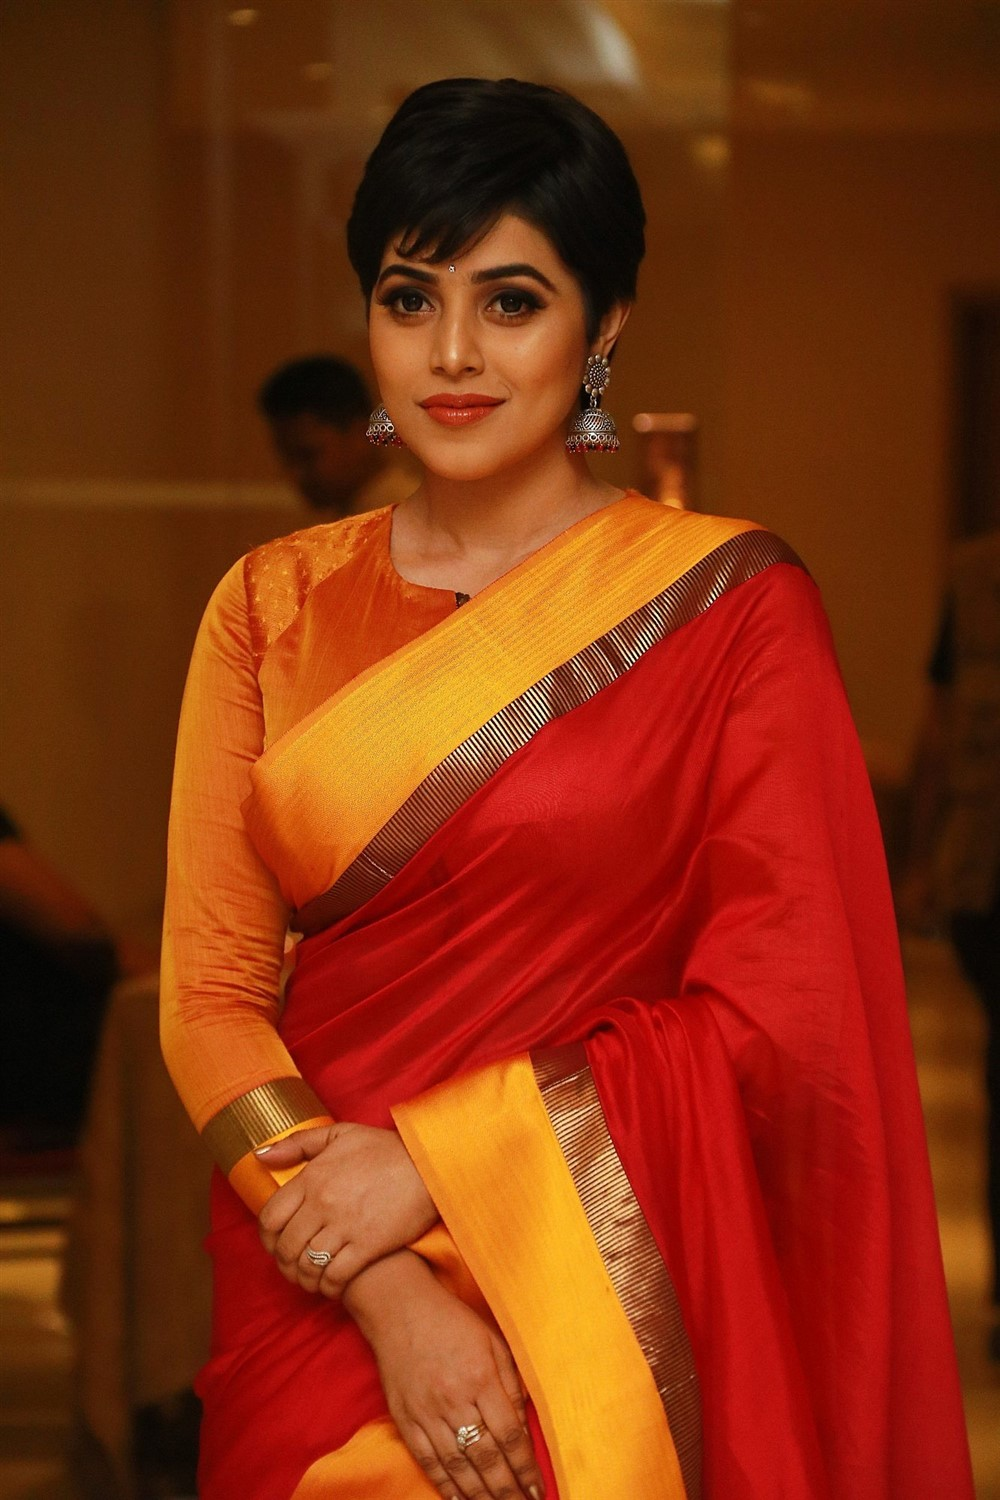 Actress Poorna in Saree New Stills